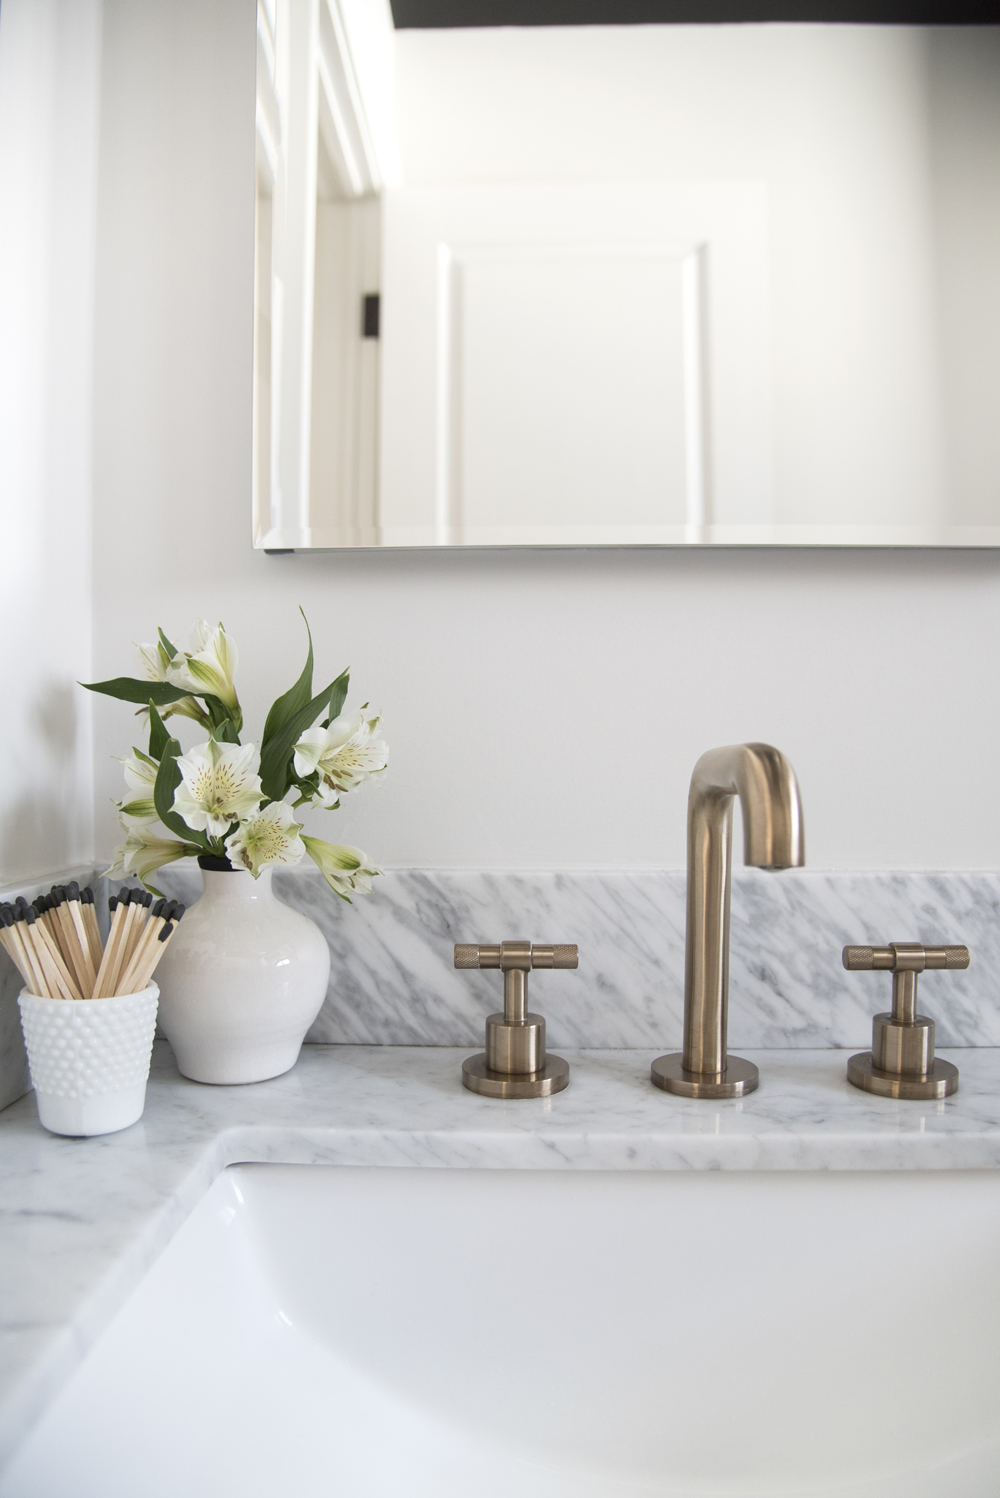 How We Choose : Widespread Bathroom Faucets - Room for Tuesday